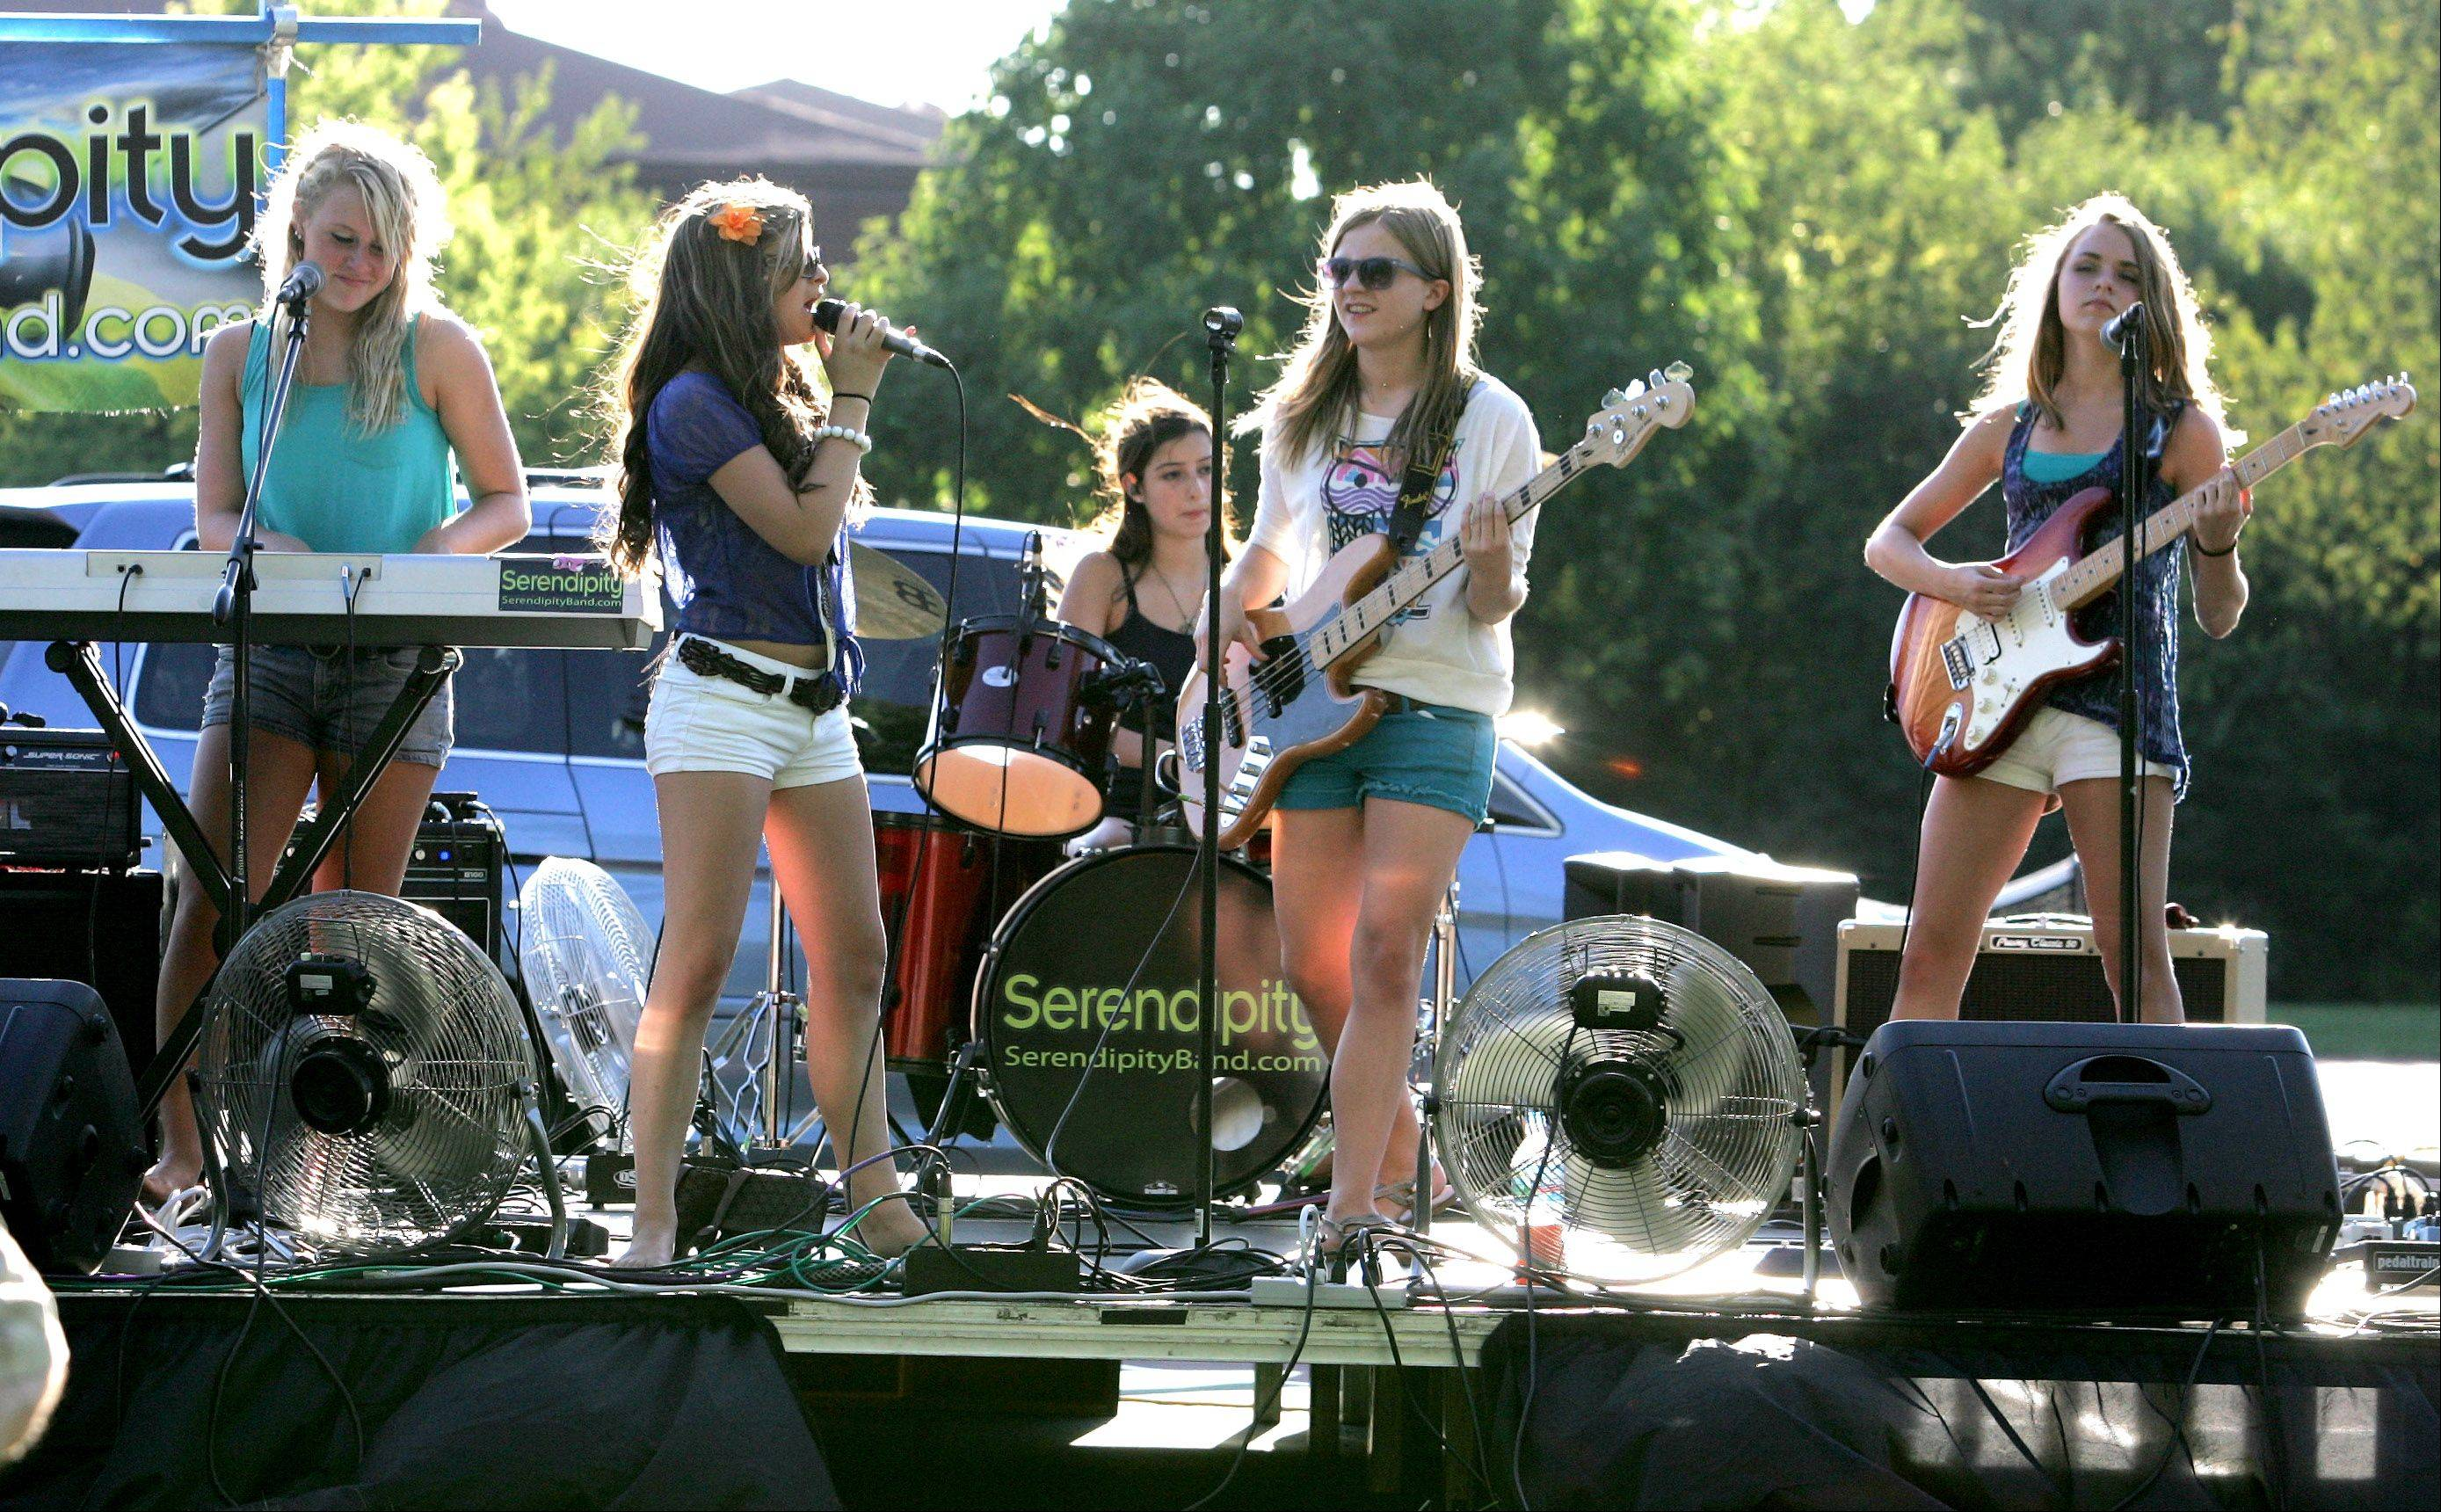 The band Serendipity plays during National Night Out at Community Park in Carol Stream on Tuesday.